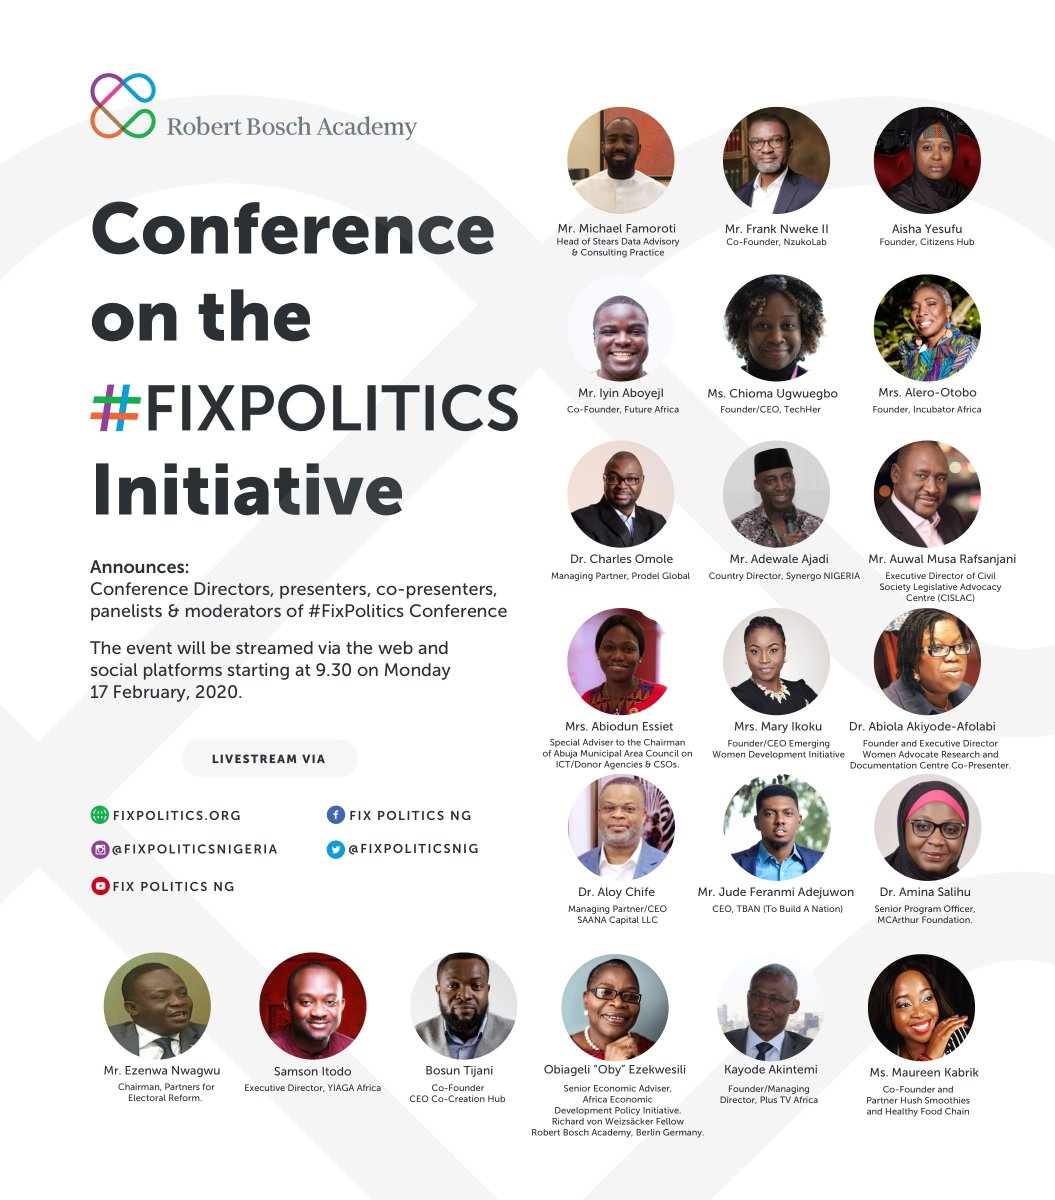 Our Conference Director/Compere @KayodeAkintemi will be assisted by @MKabrik .   Tomorrow is a loaded program on #FixPolitics.   I am so looking forward to getting more inspiration for Imagination and Knowledge from all these wonderful people.  #FixPolitics @fixpoliticsnig https://t.co/5ZefneOgCY